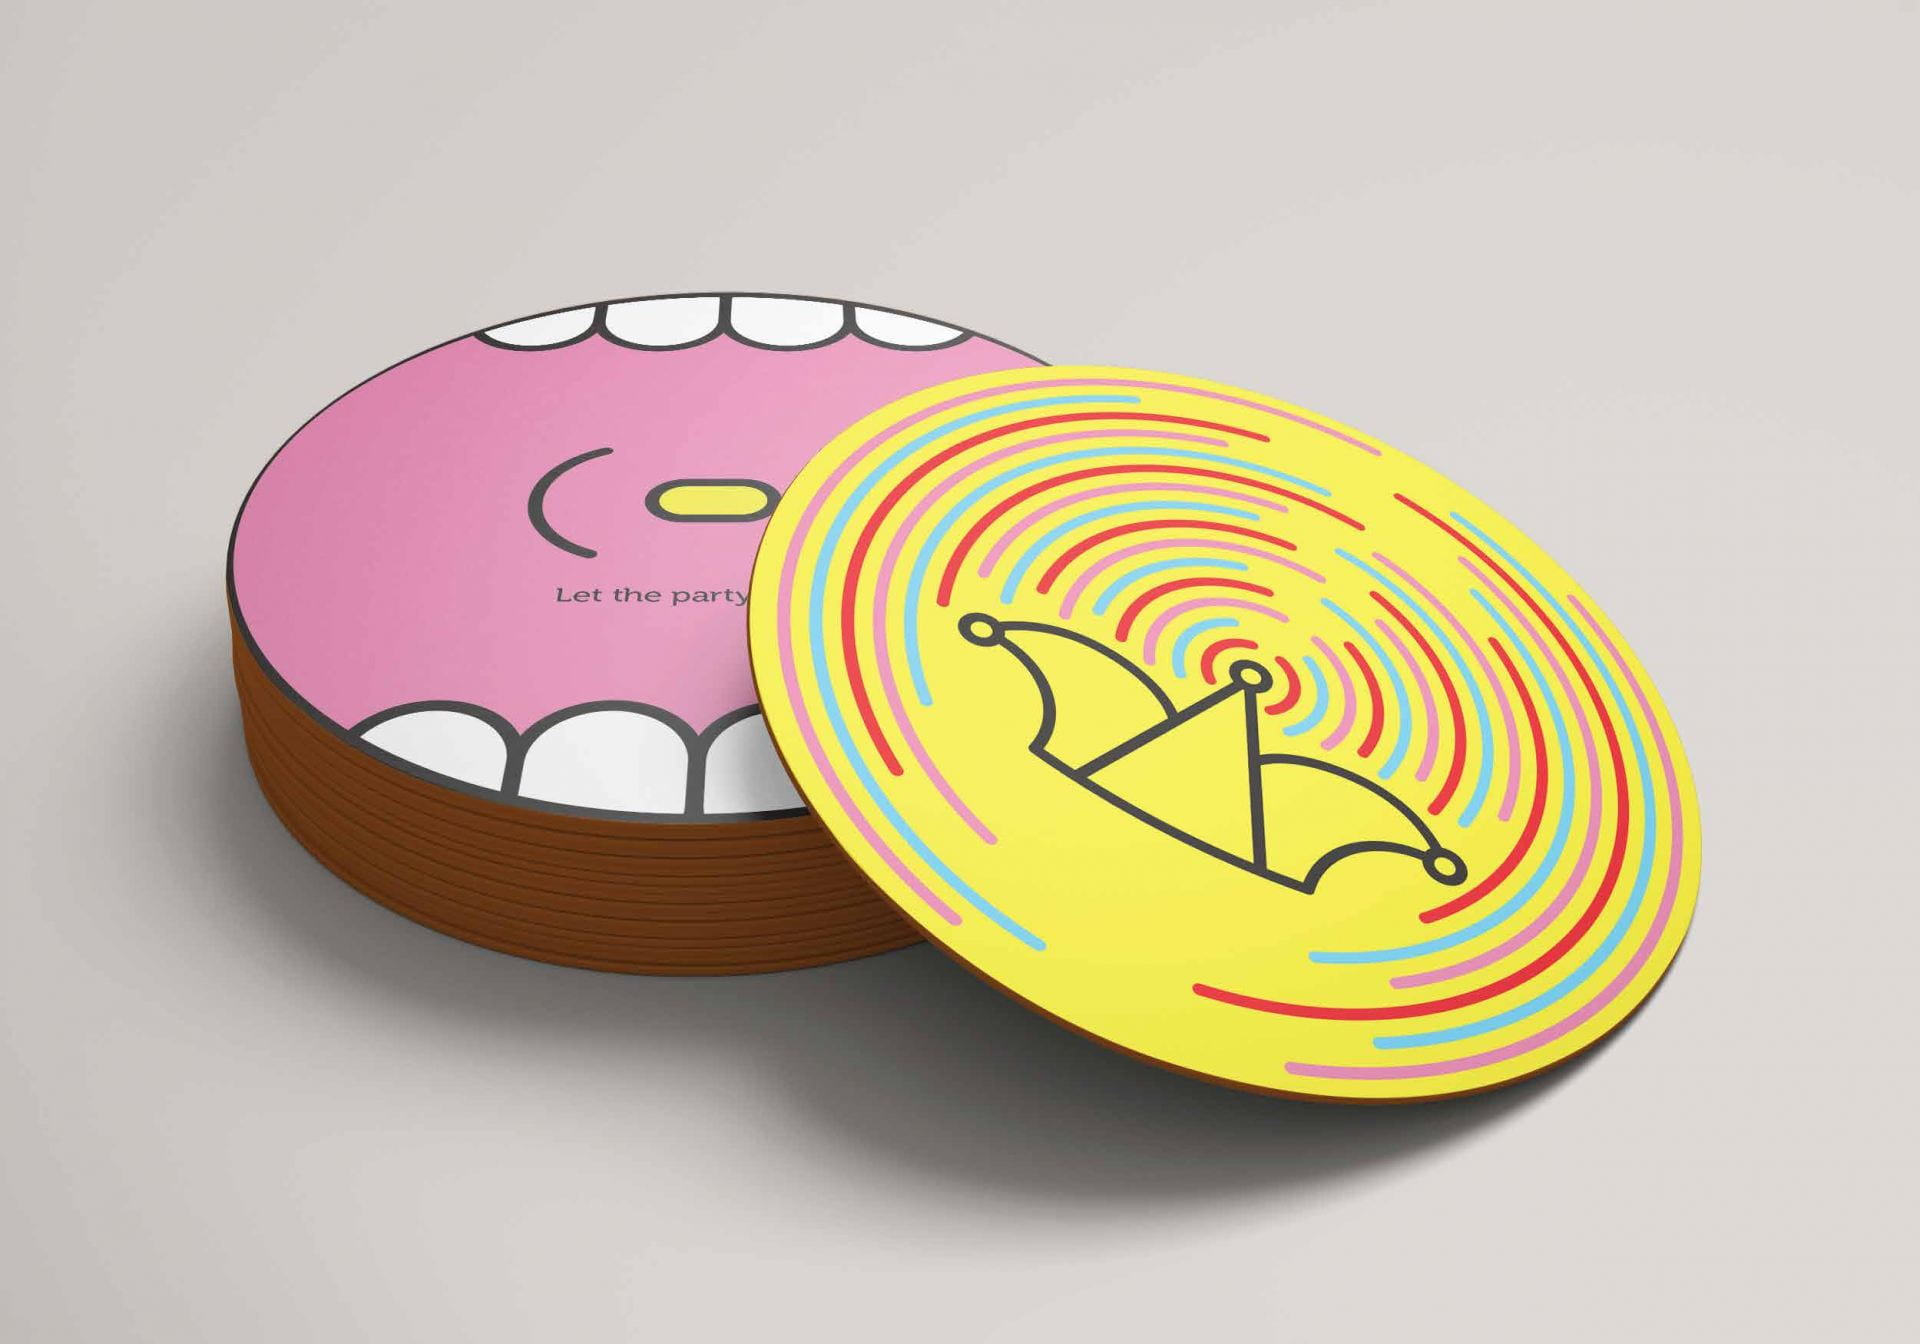 A pink coaster, an illustration of an open mouth with a pill inside, text reads: